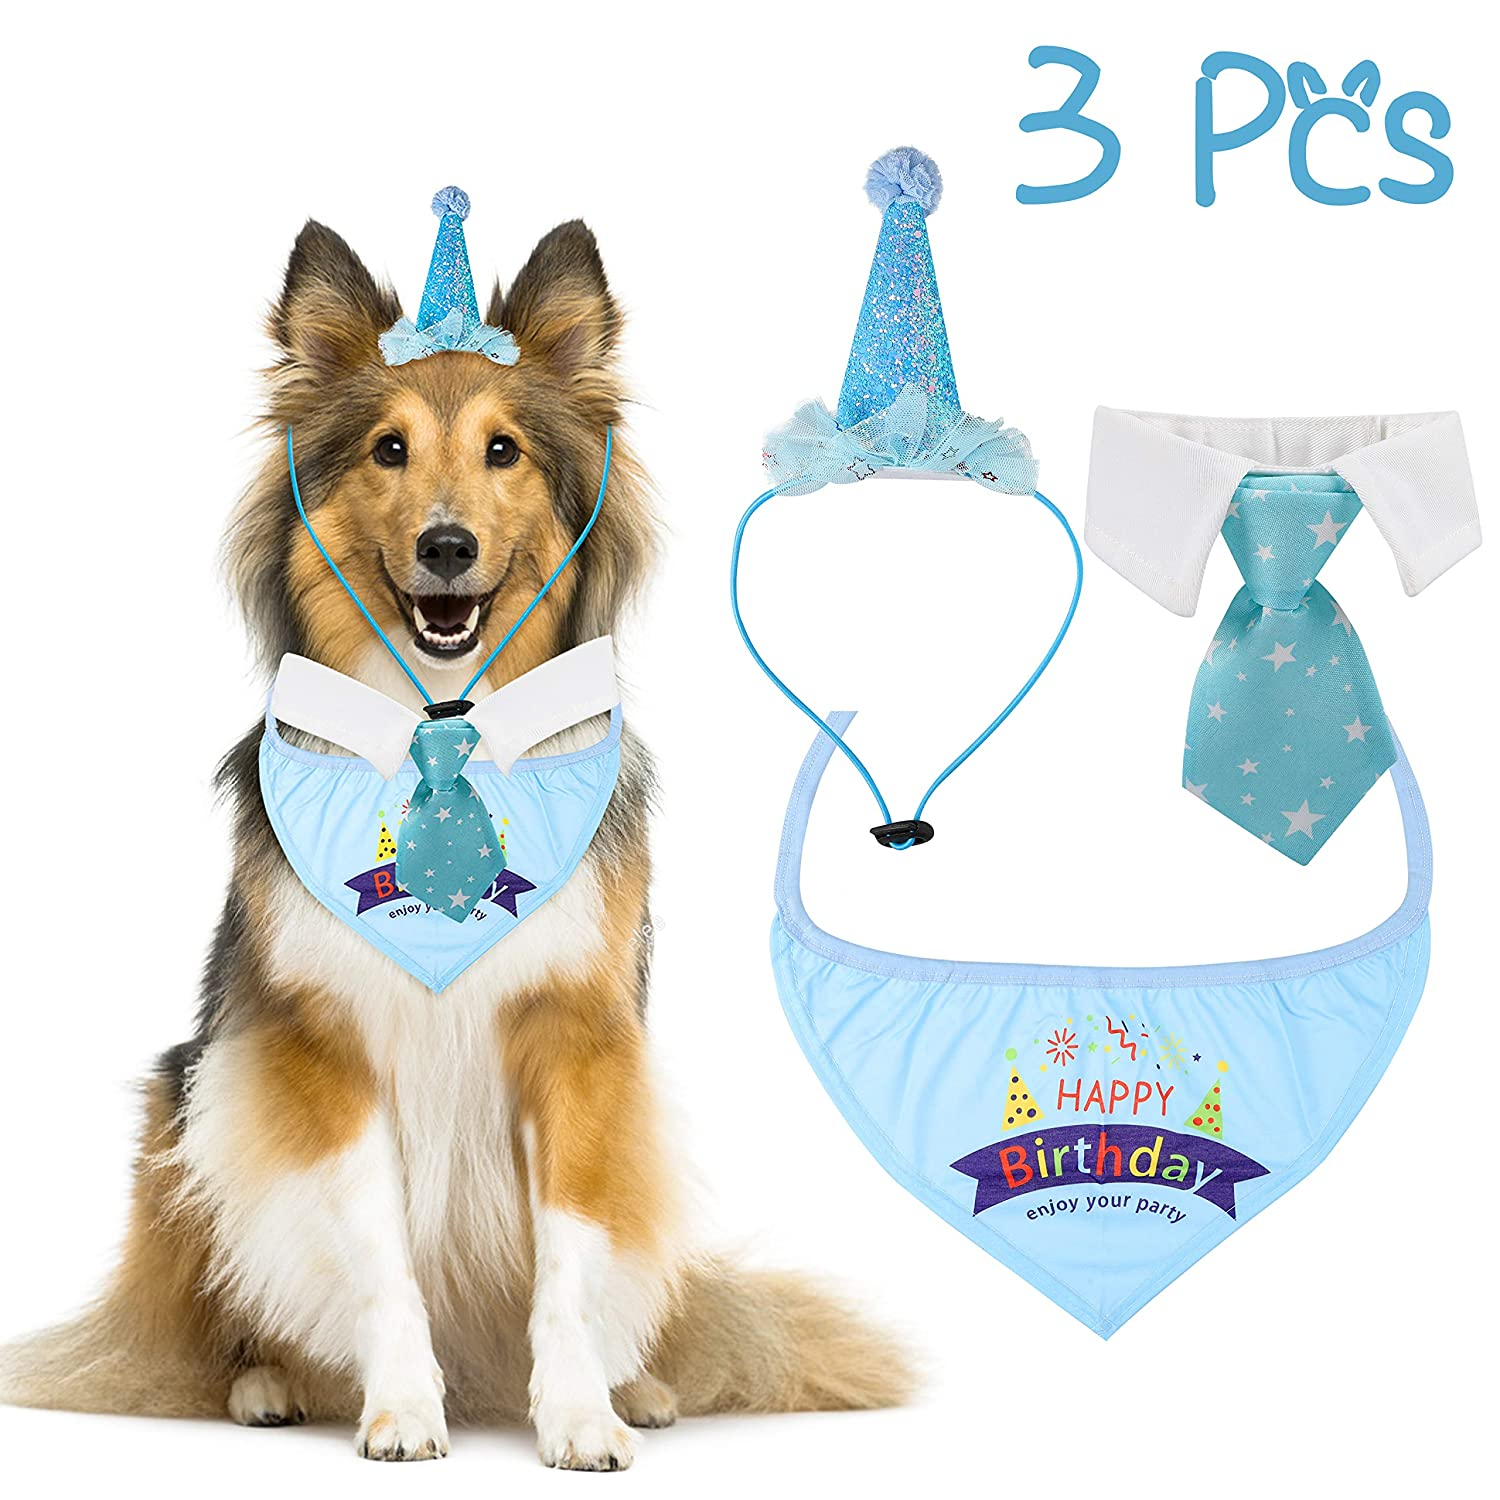 R HORSE 3 Packs Dog Birthday Bandana Scarf Birthday Party Hat with Tie Dog Party Accessories Party Supplies for Boy Large Dogs